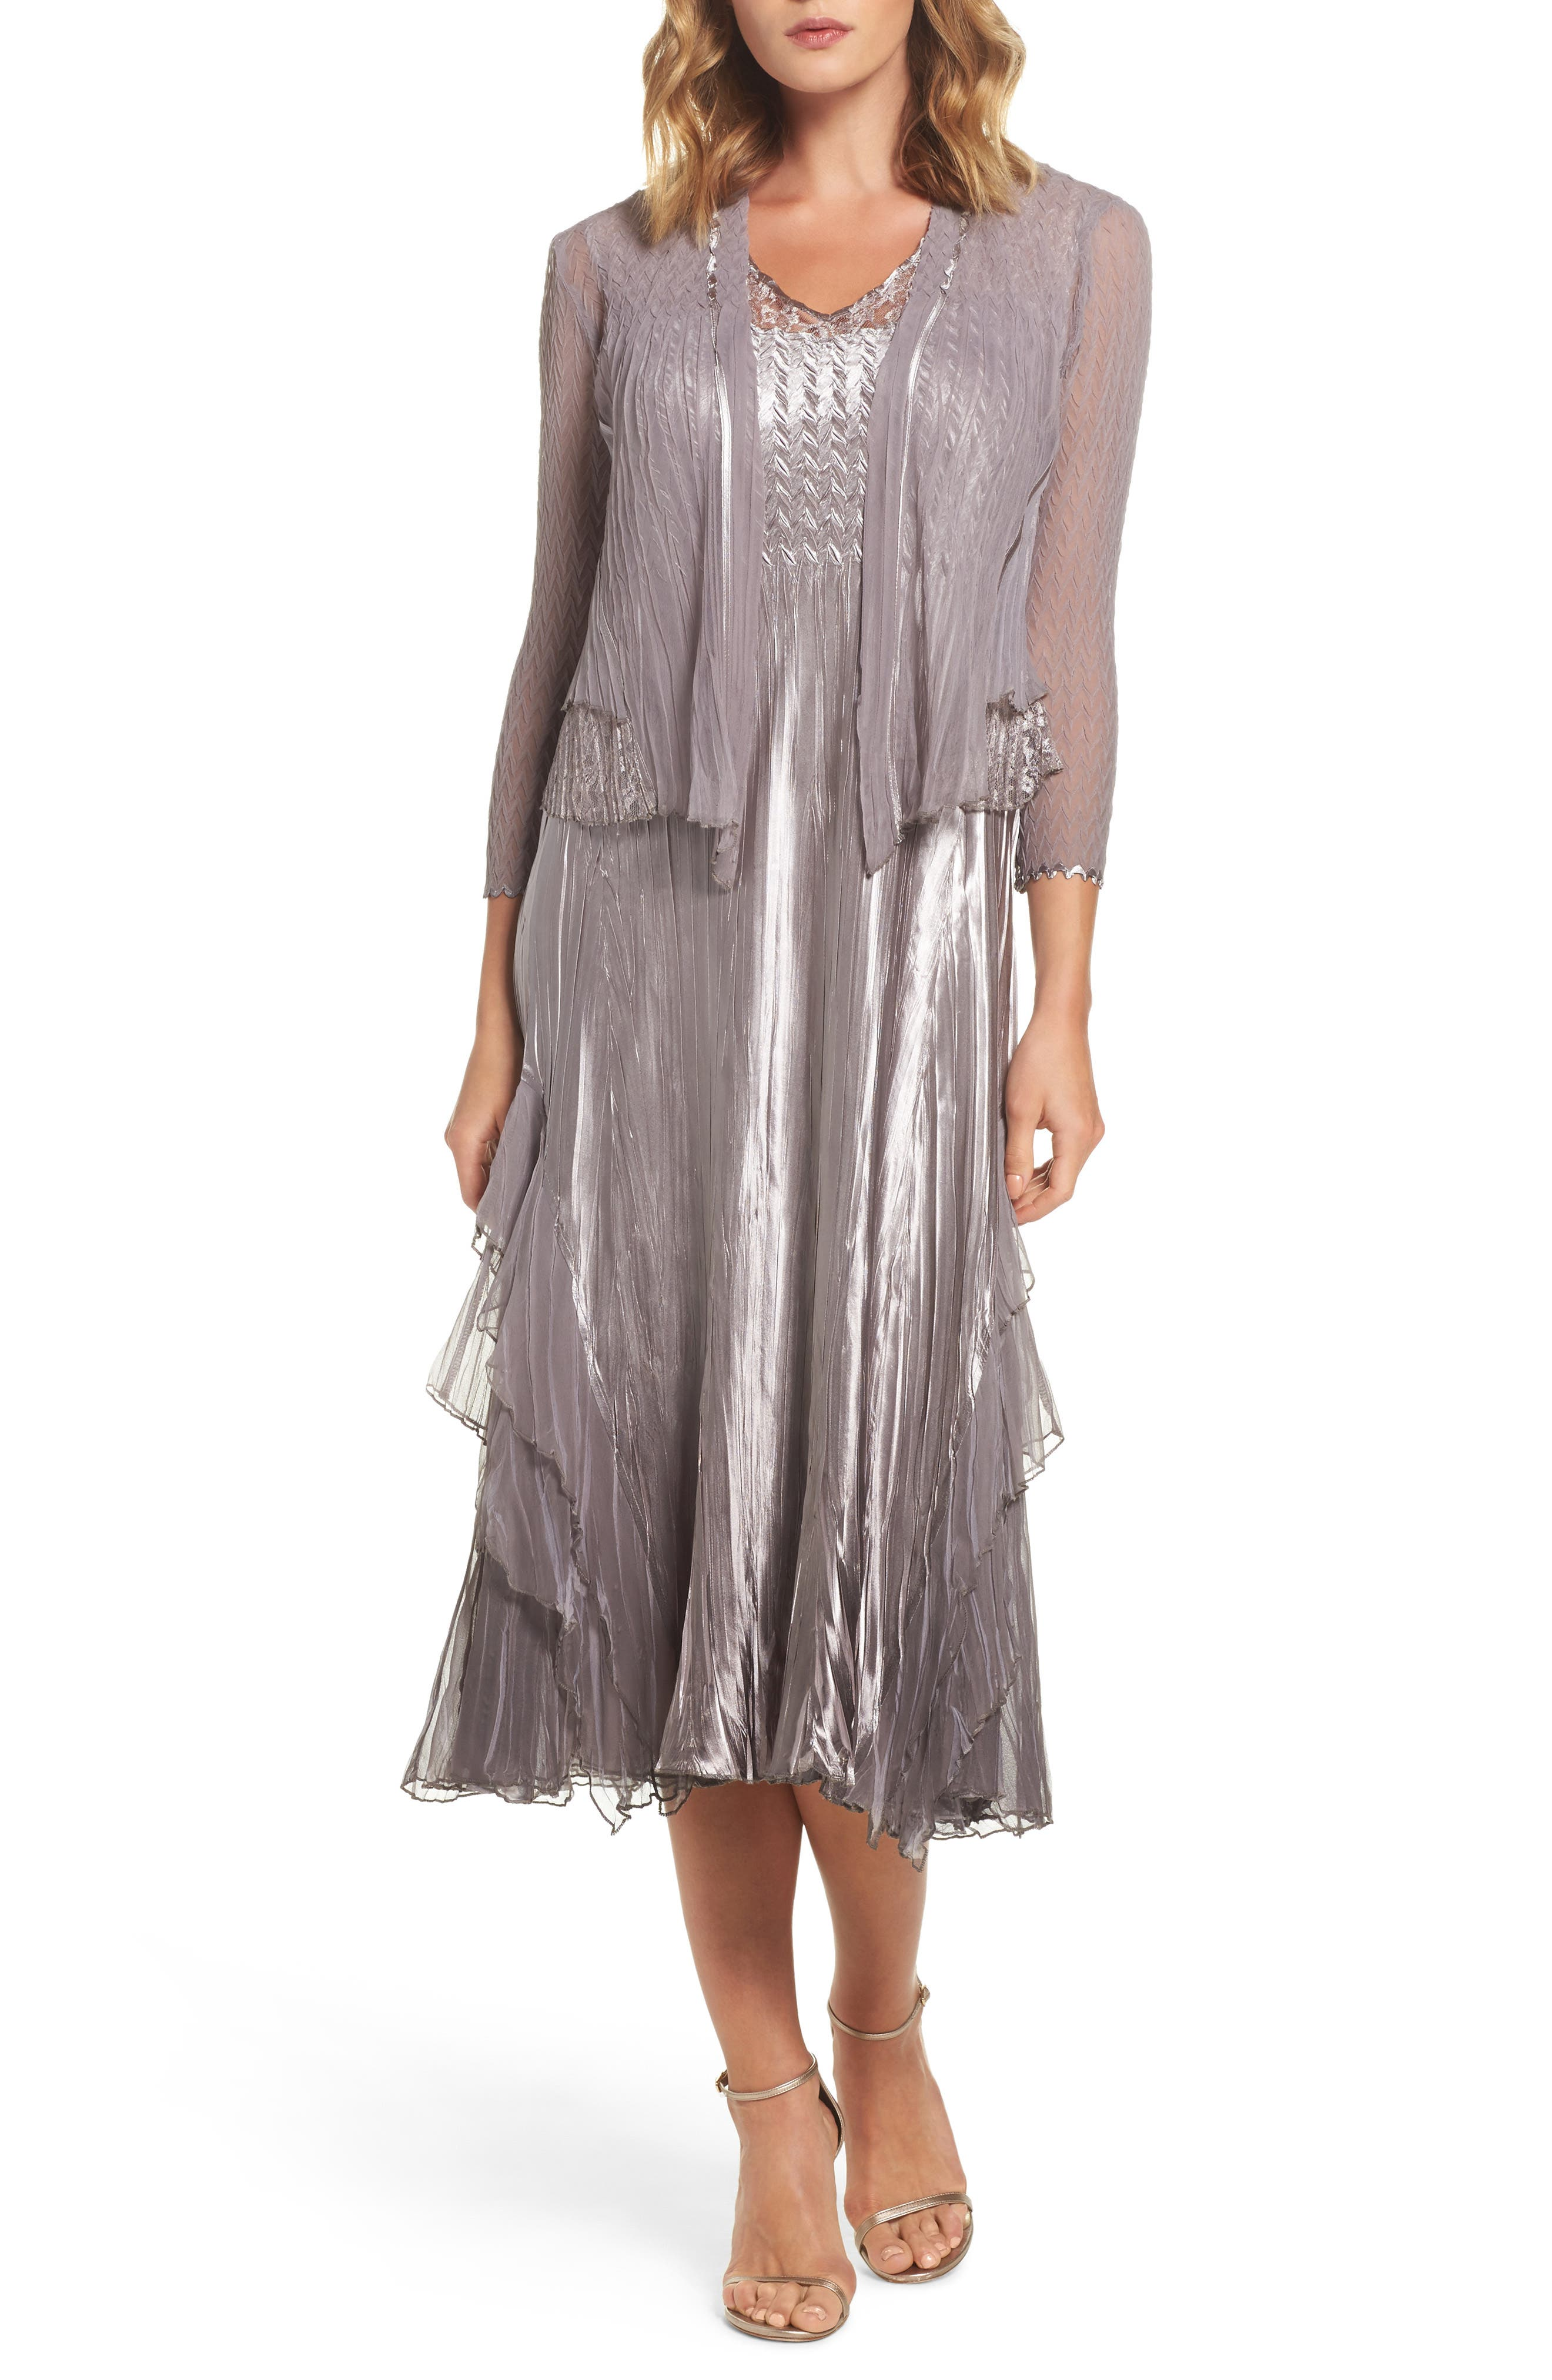 Komarov Waterfall Dress with Jacket (Regular & Petite)